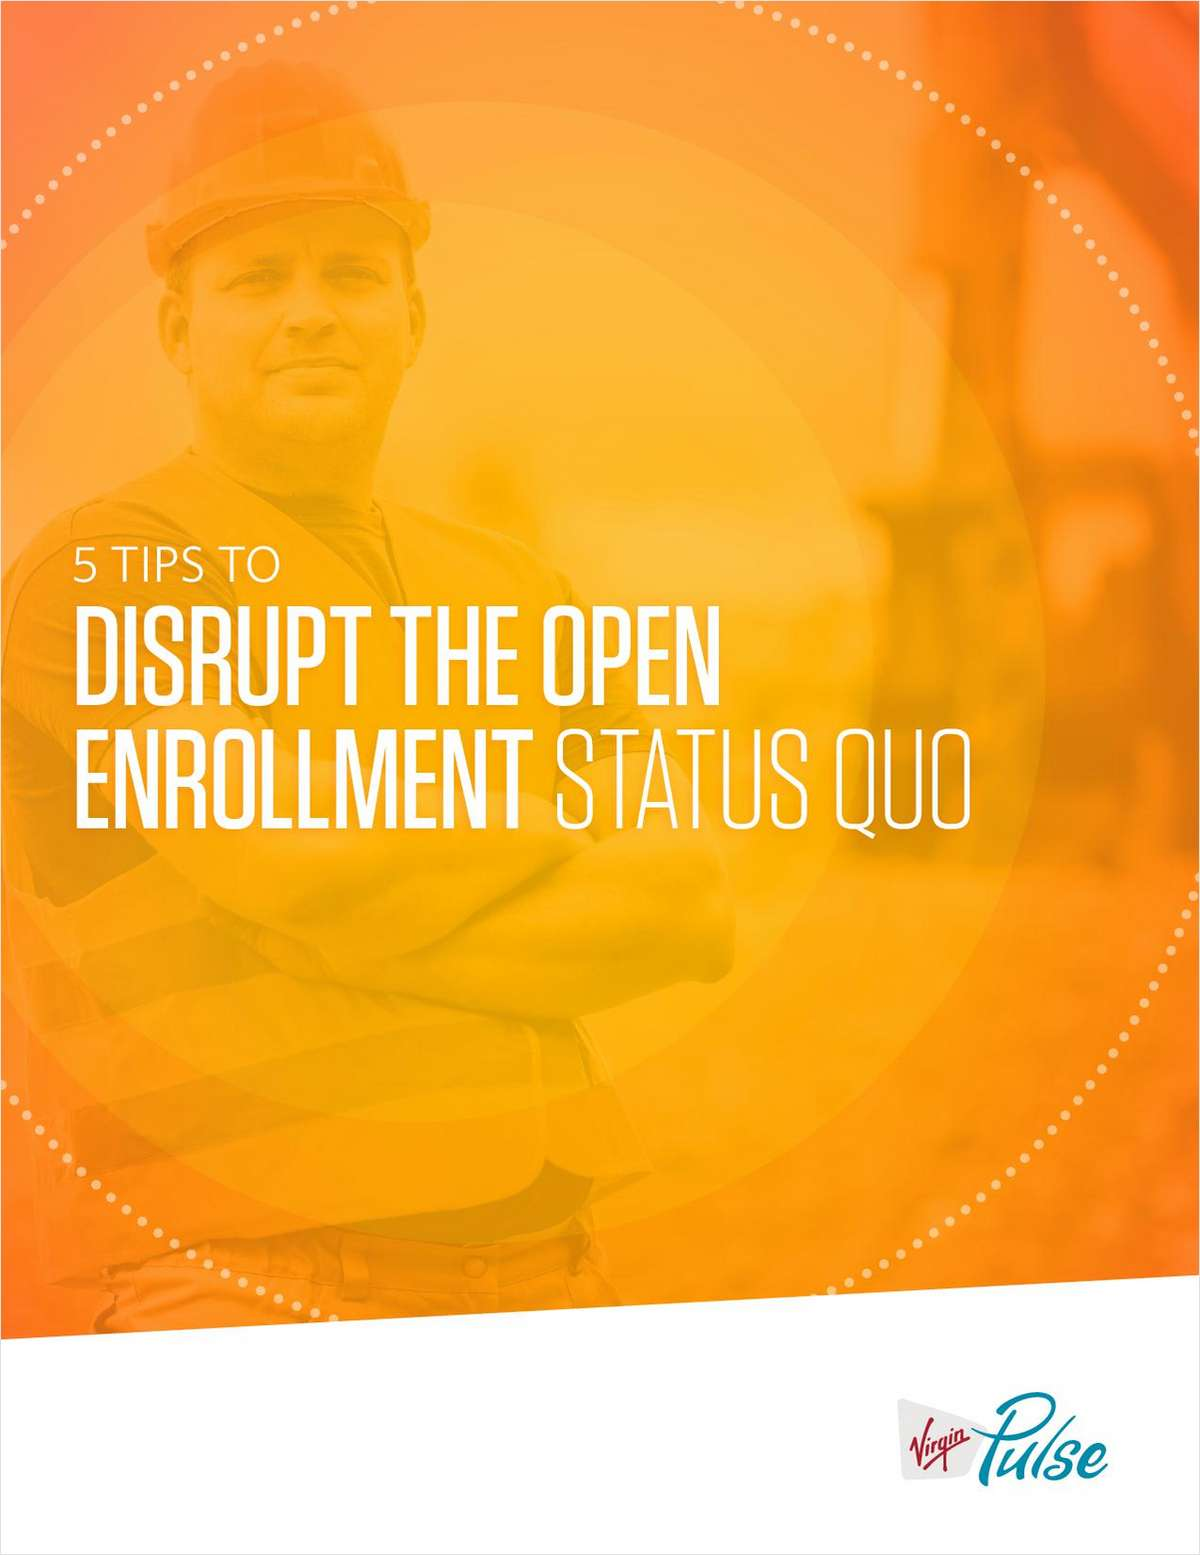 5 Tips to Disrupt the Open Enrollment Status Quo